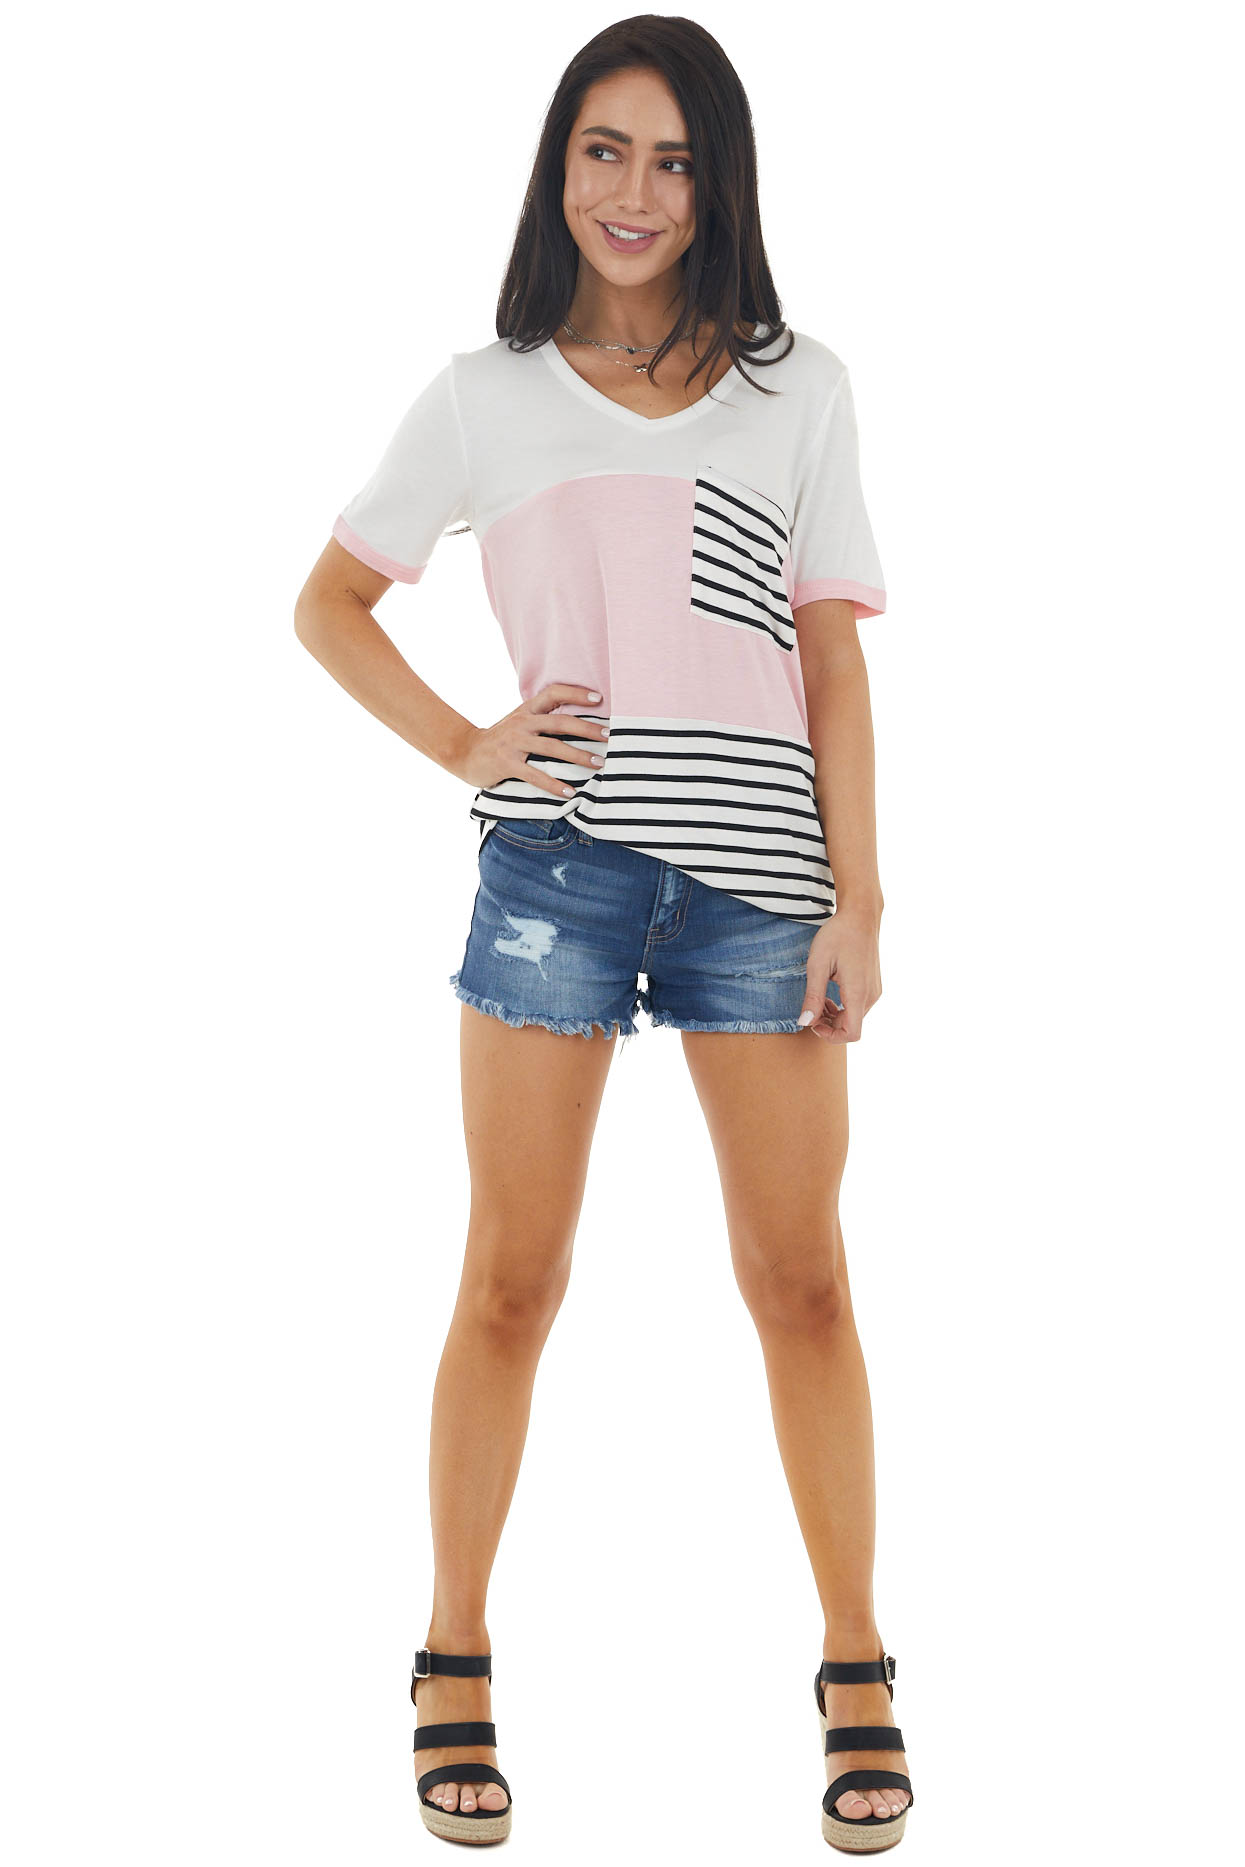 Ivory and Baby Pink Colorblock Knit Top with Striped Pocket